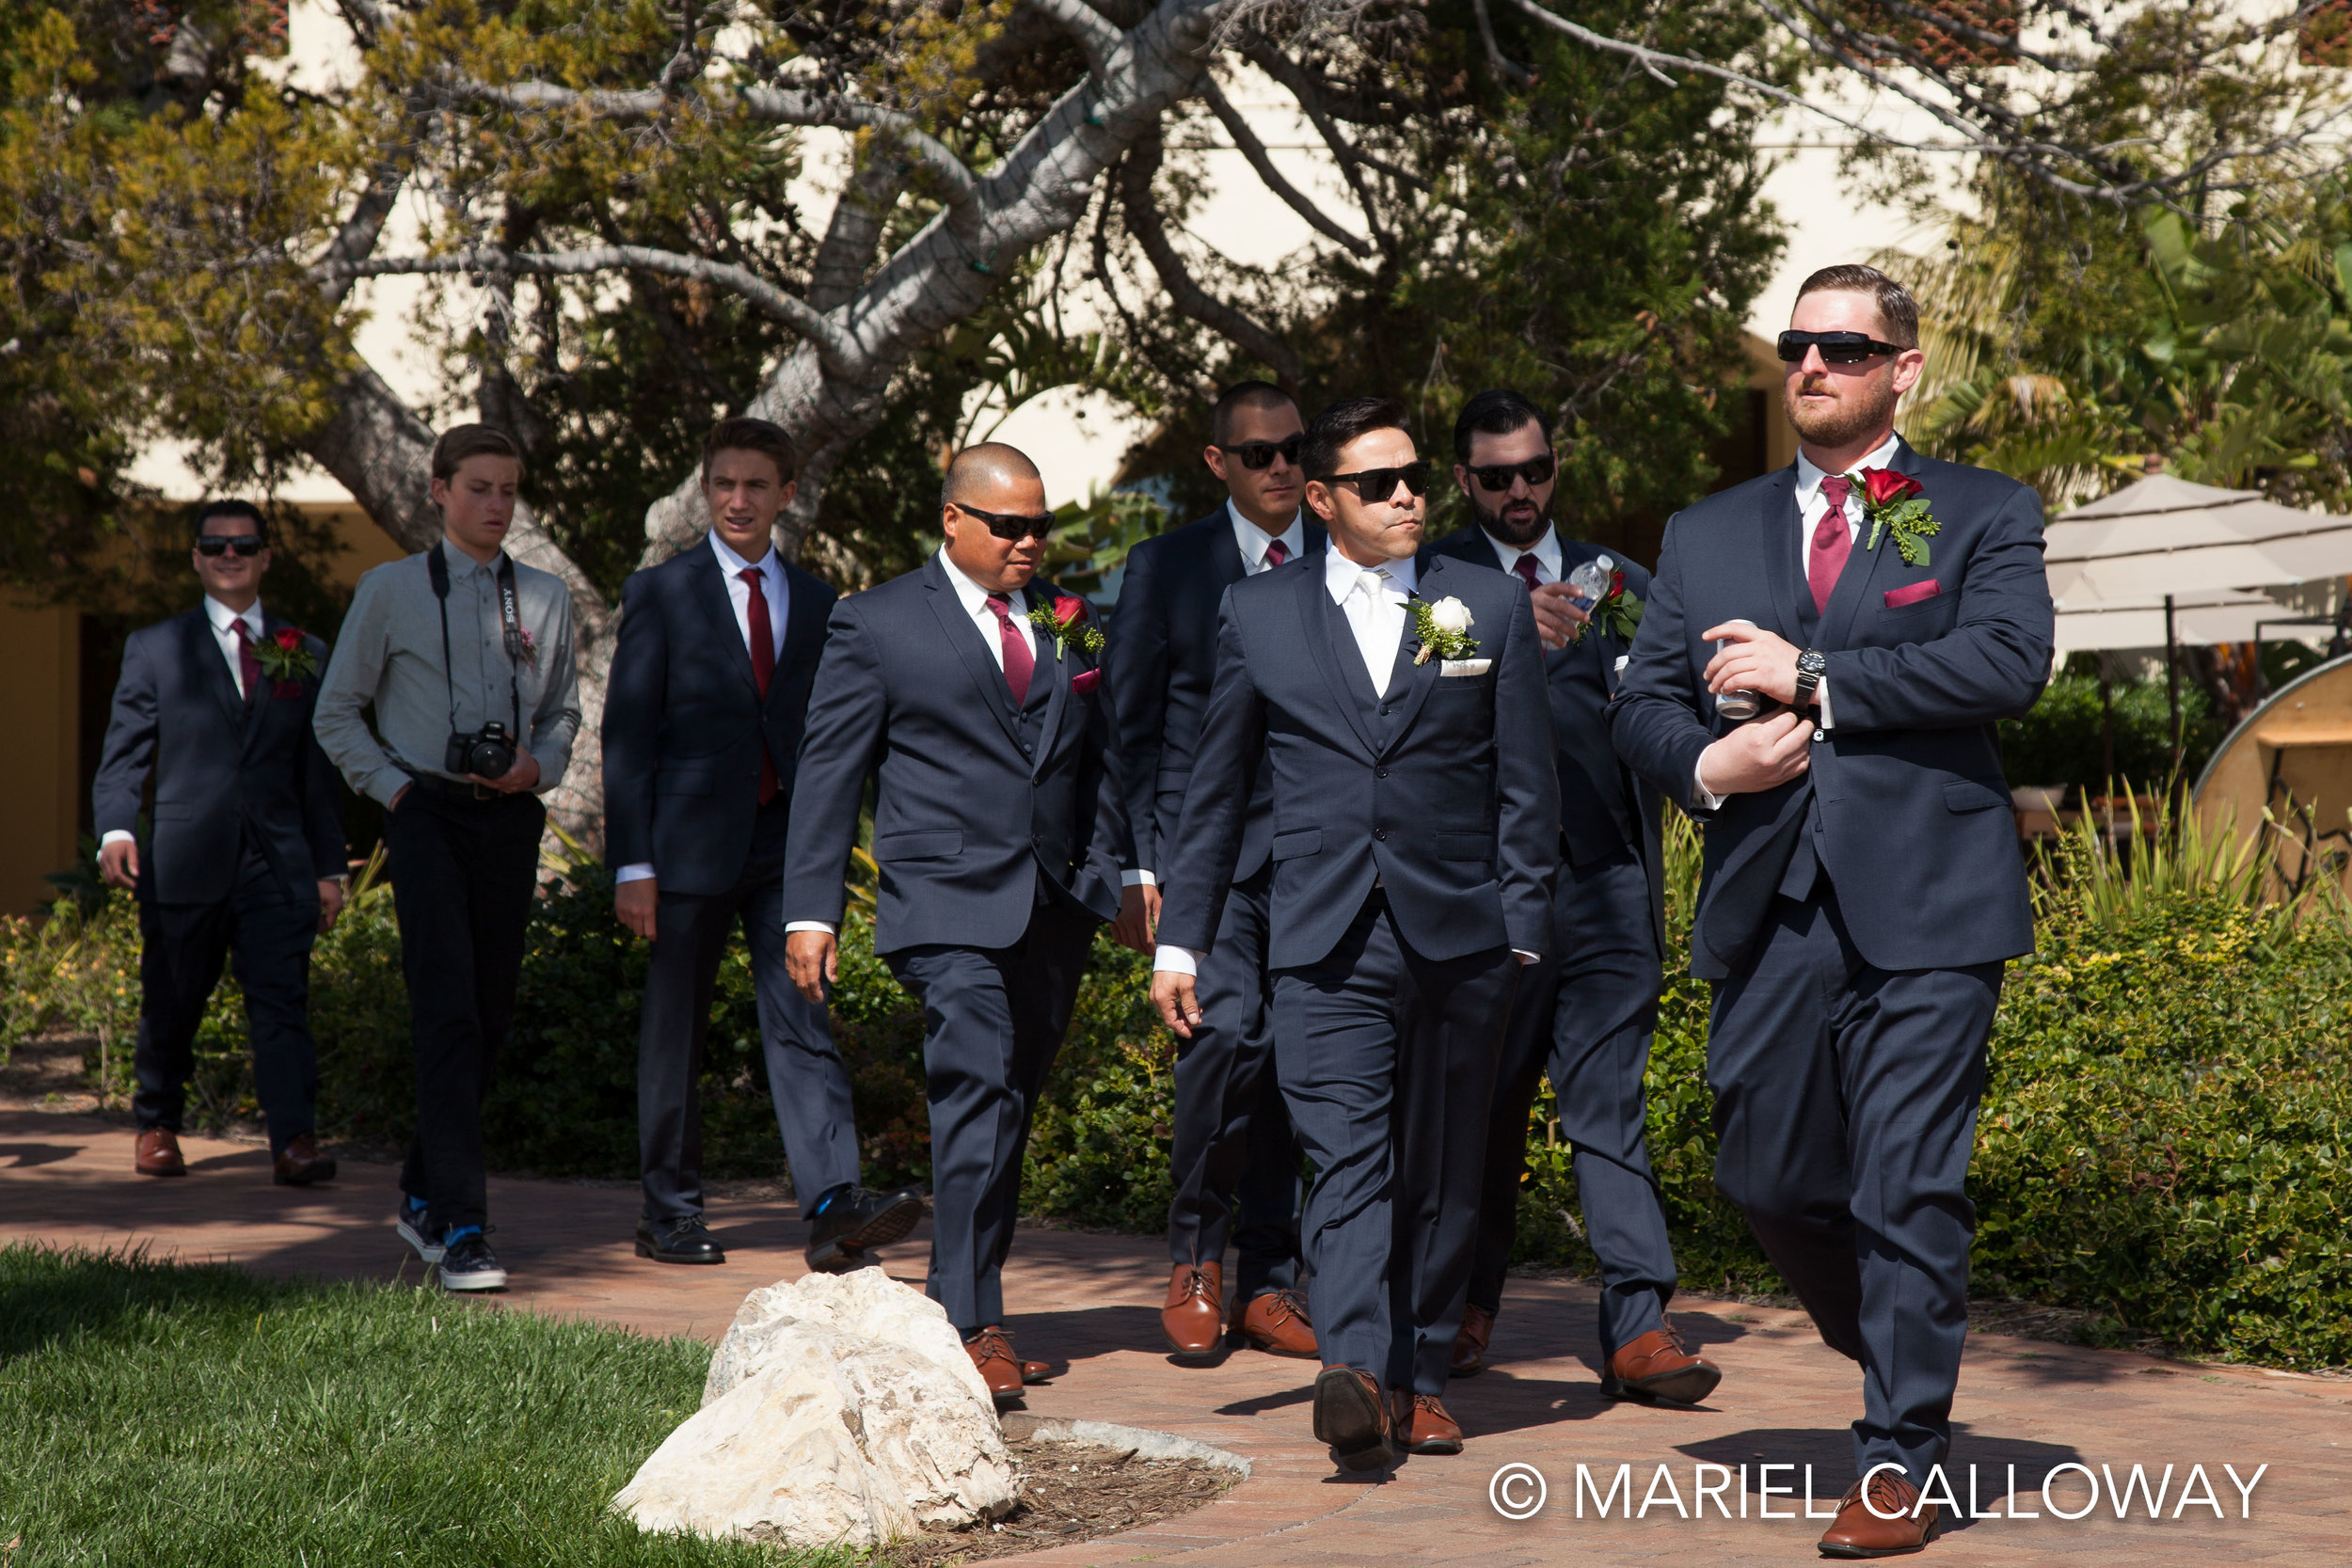 Mariel-Calloway-Los-Angeles-Wedding-Photography-Carmona-3.jpg